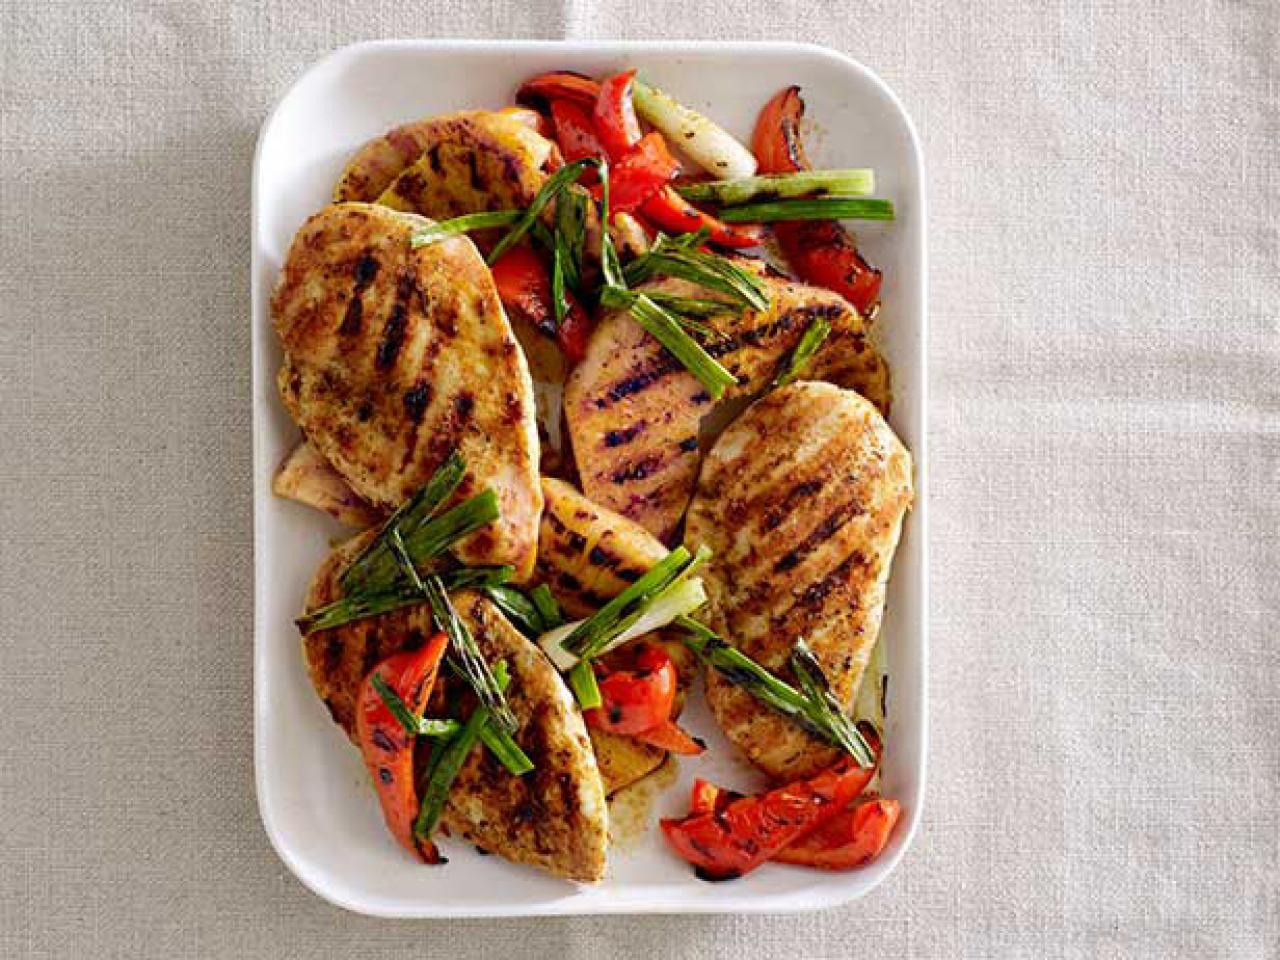 No more boring bird! A fast and family-friendly weeknight staple, chicken is a go-to protein choice for busy family cooks. Americans love chicken and healthy chicken recipes.